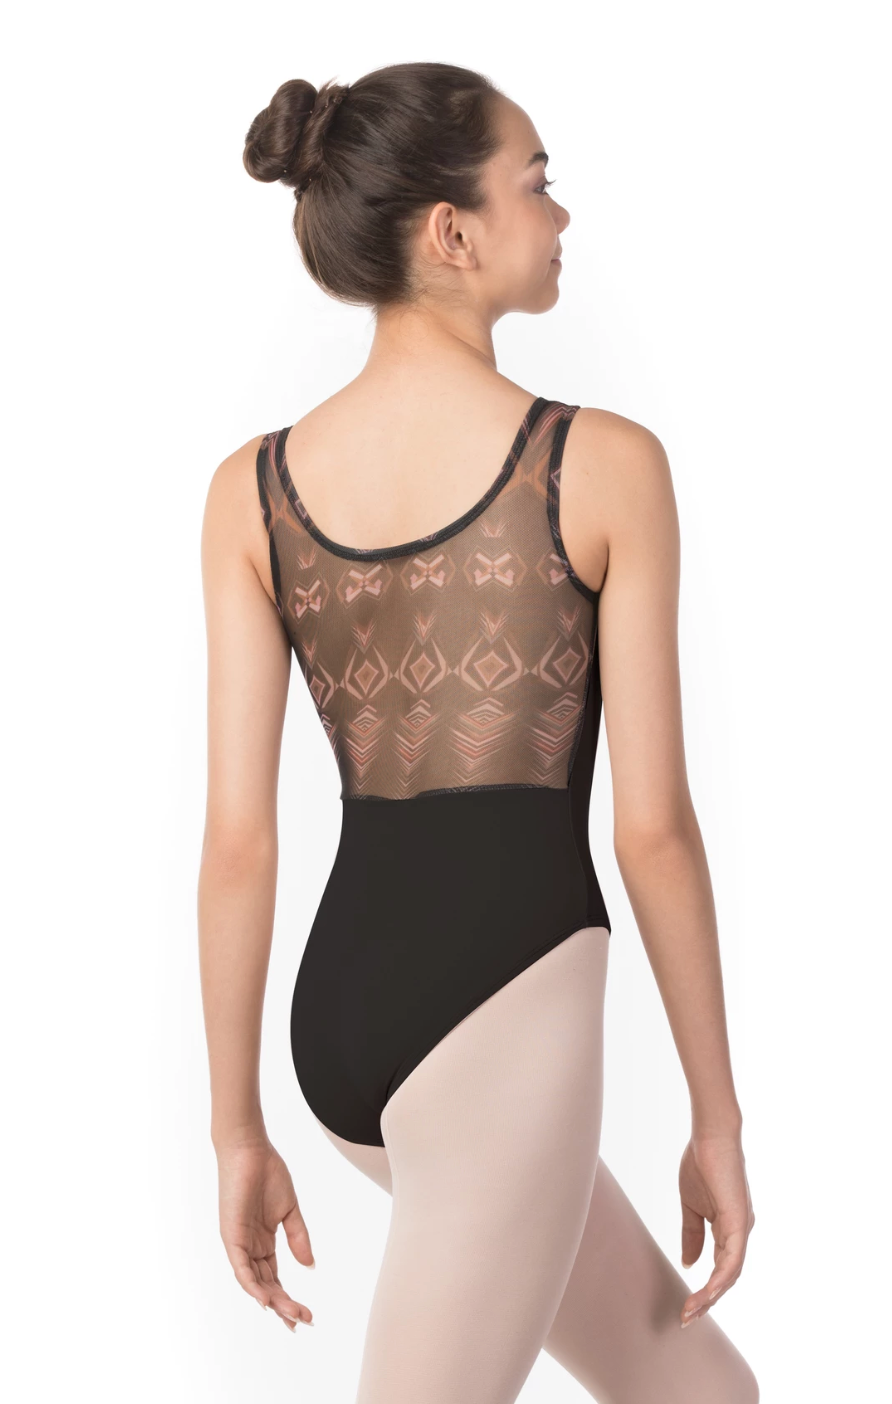 Audition Dancewear Carla Leotard